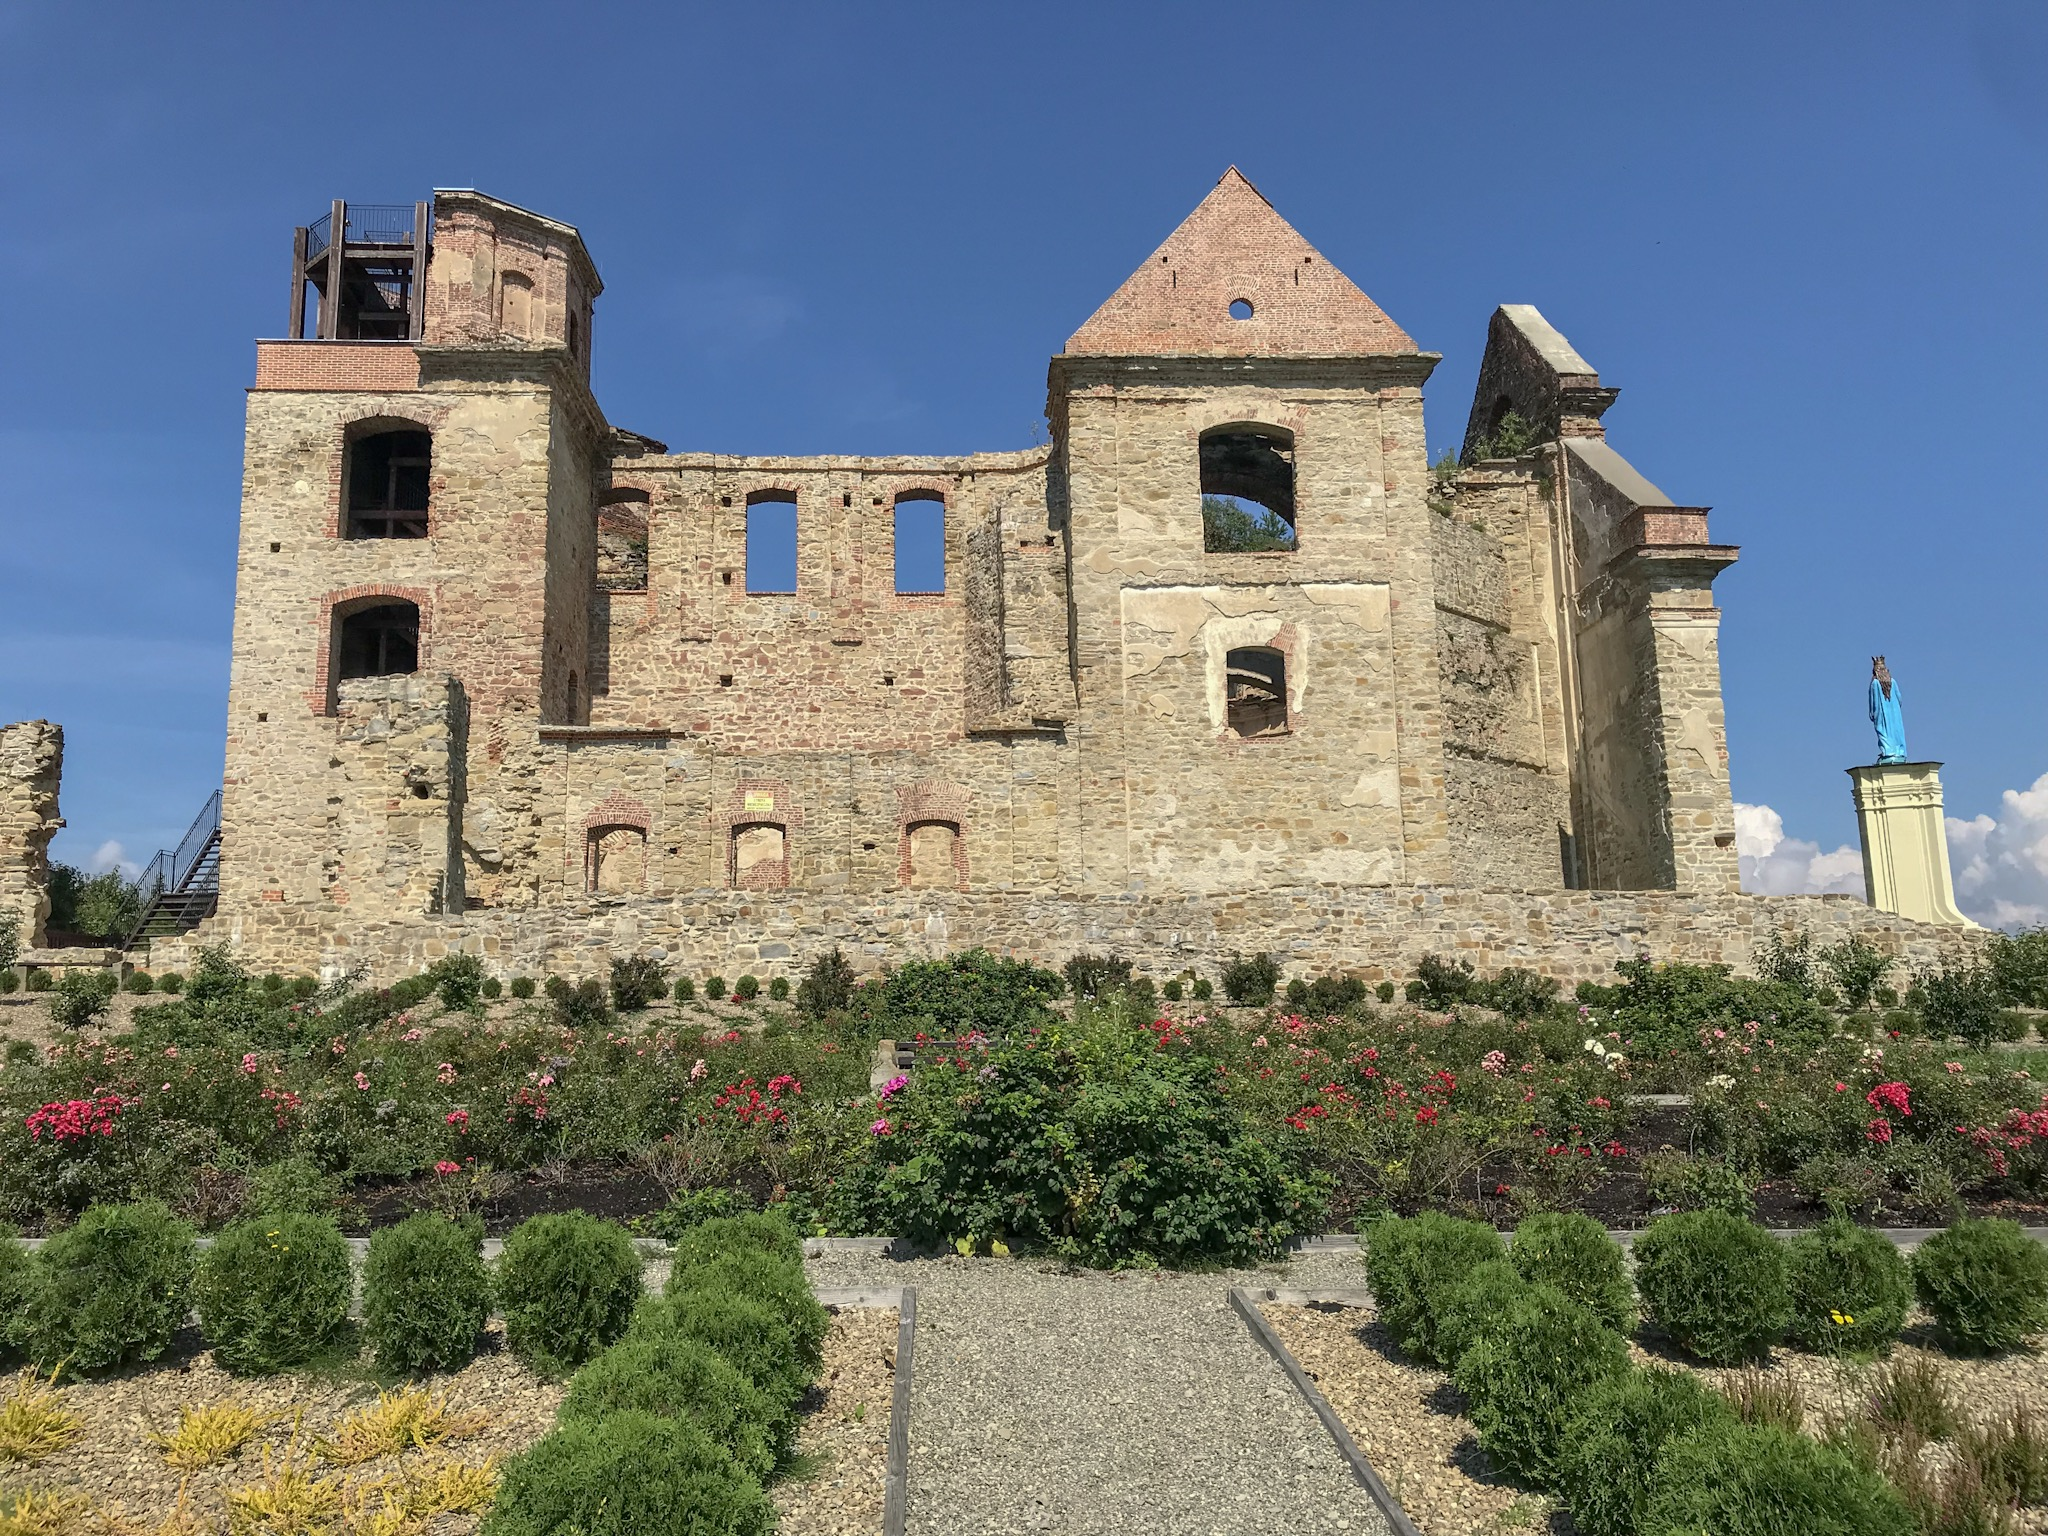 Ruins of a Carmelite Monestary, Zagorz  (I know it's not technically a castle—but it's all ruiny and beautiful, and, besides, it was once fortified so I'm including it)